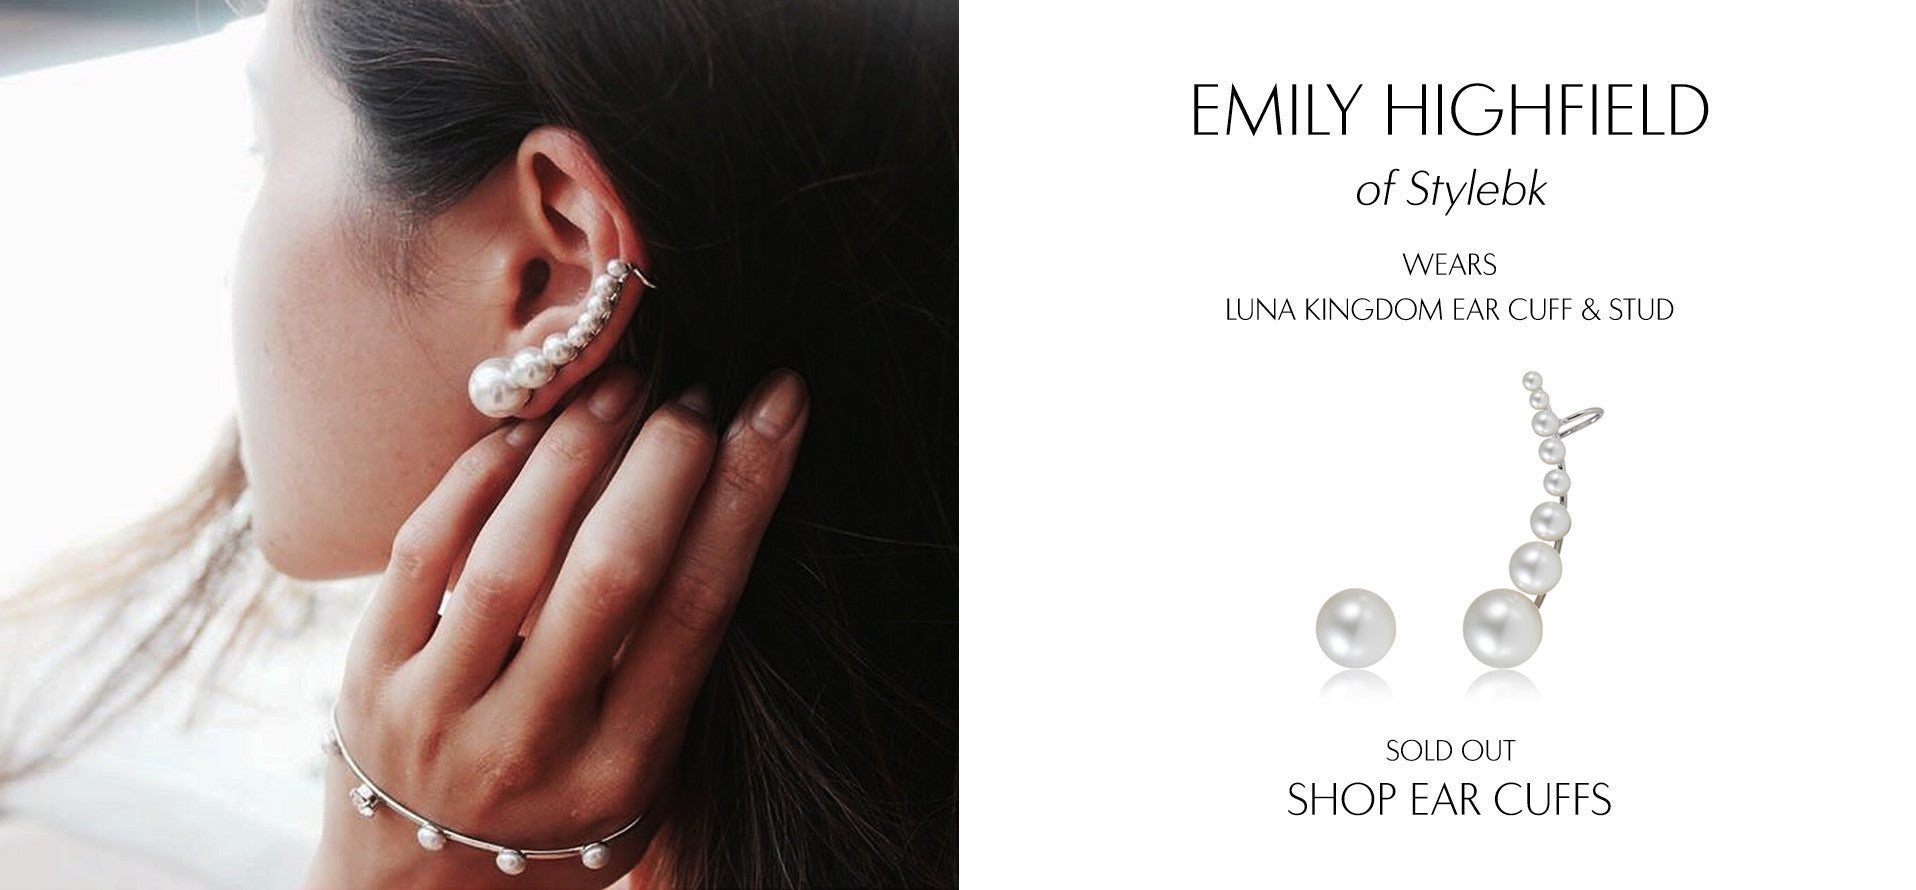 Stylebk - Fashion Blog by Emily Highfield wears Sarina Suriano Luna Kingdom pearl earcuff and stud